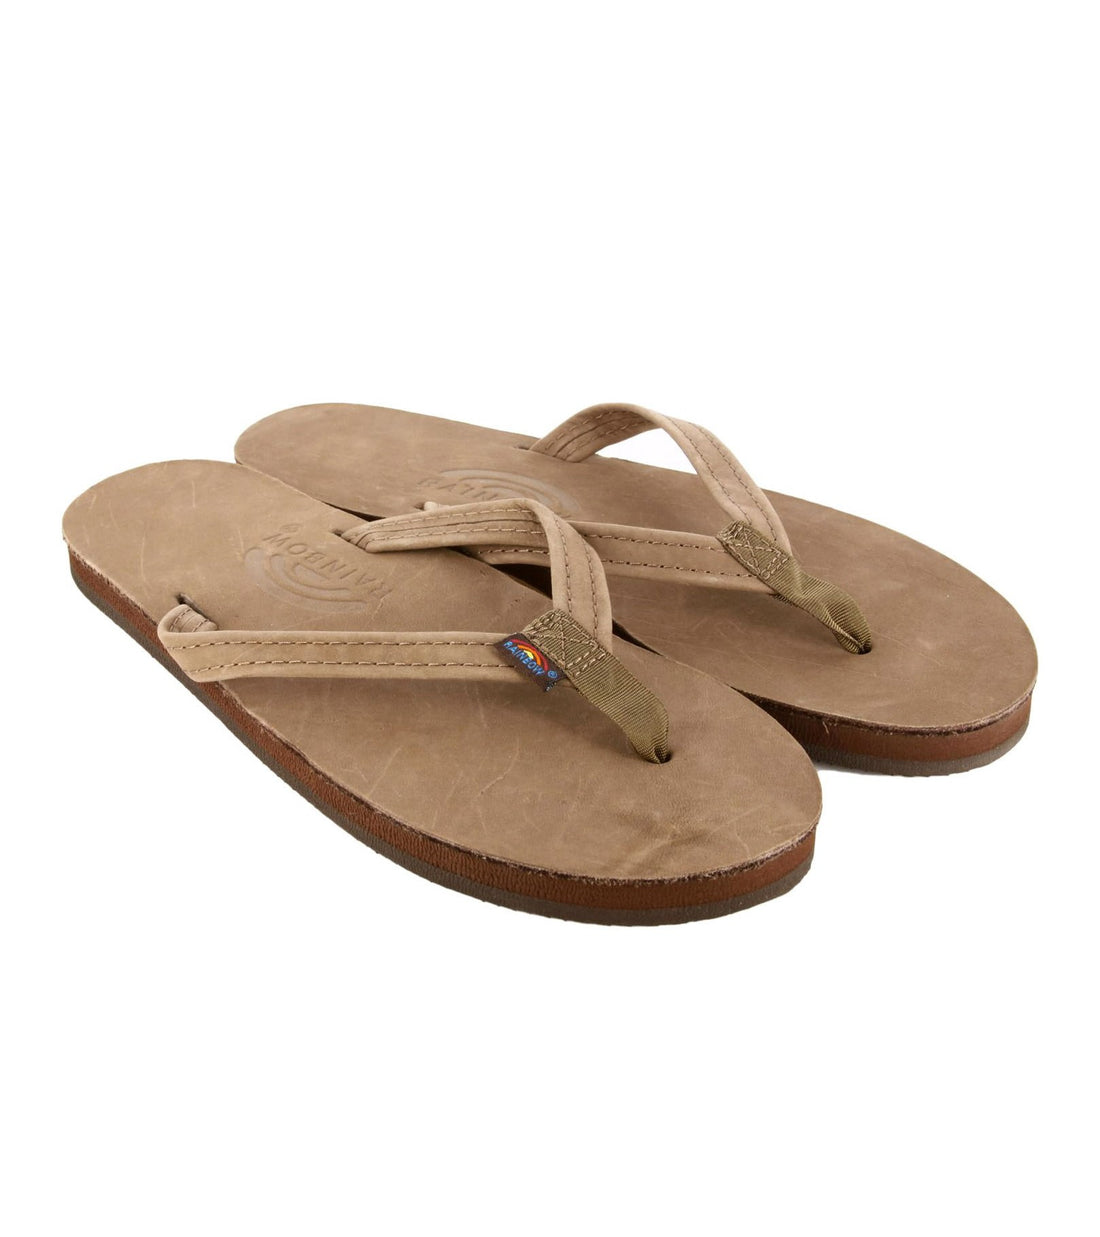 Rainbow Sandals Women's Leather Narrow Strap - Shoes: Women's: Sandals - Iron and Resin